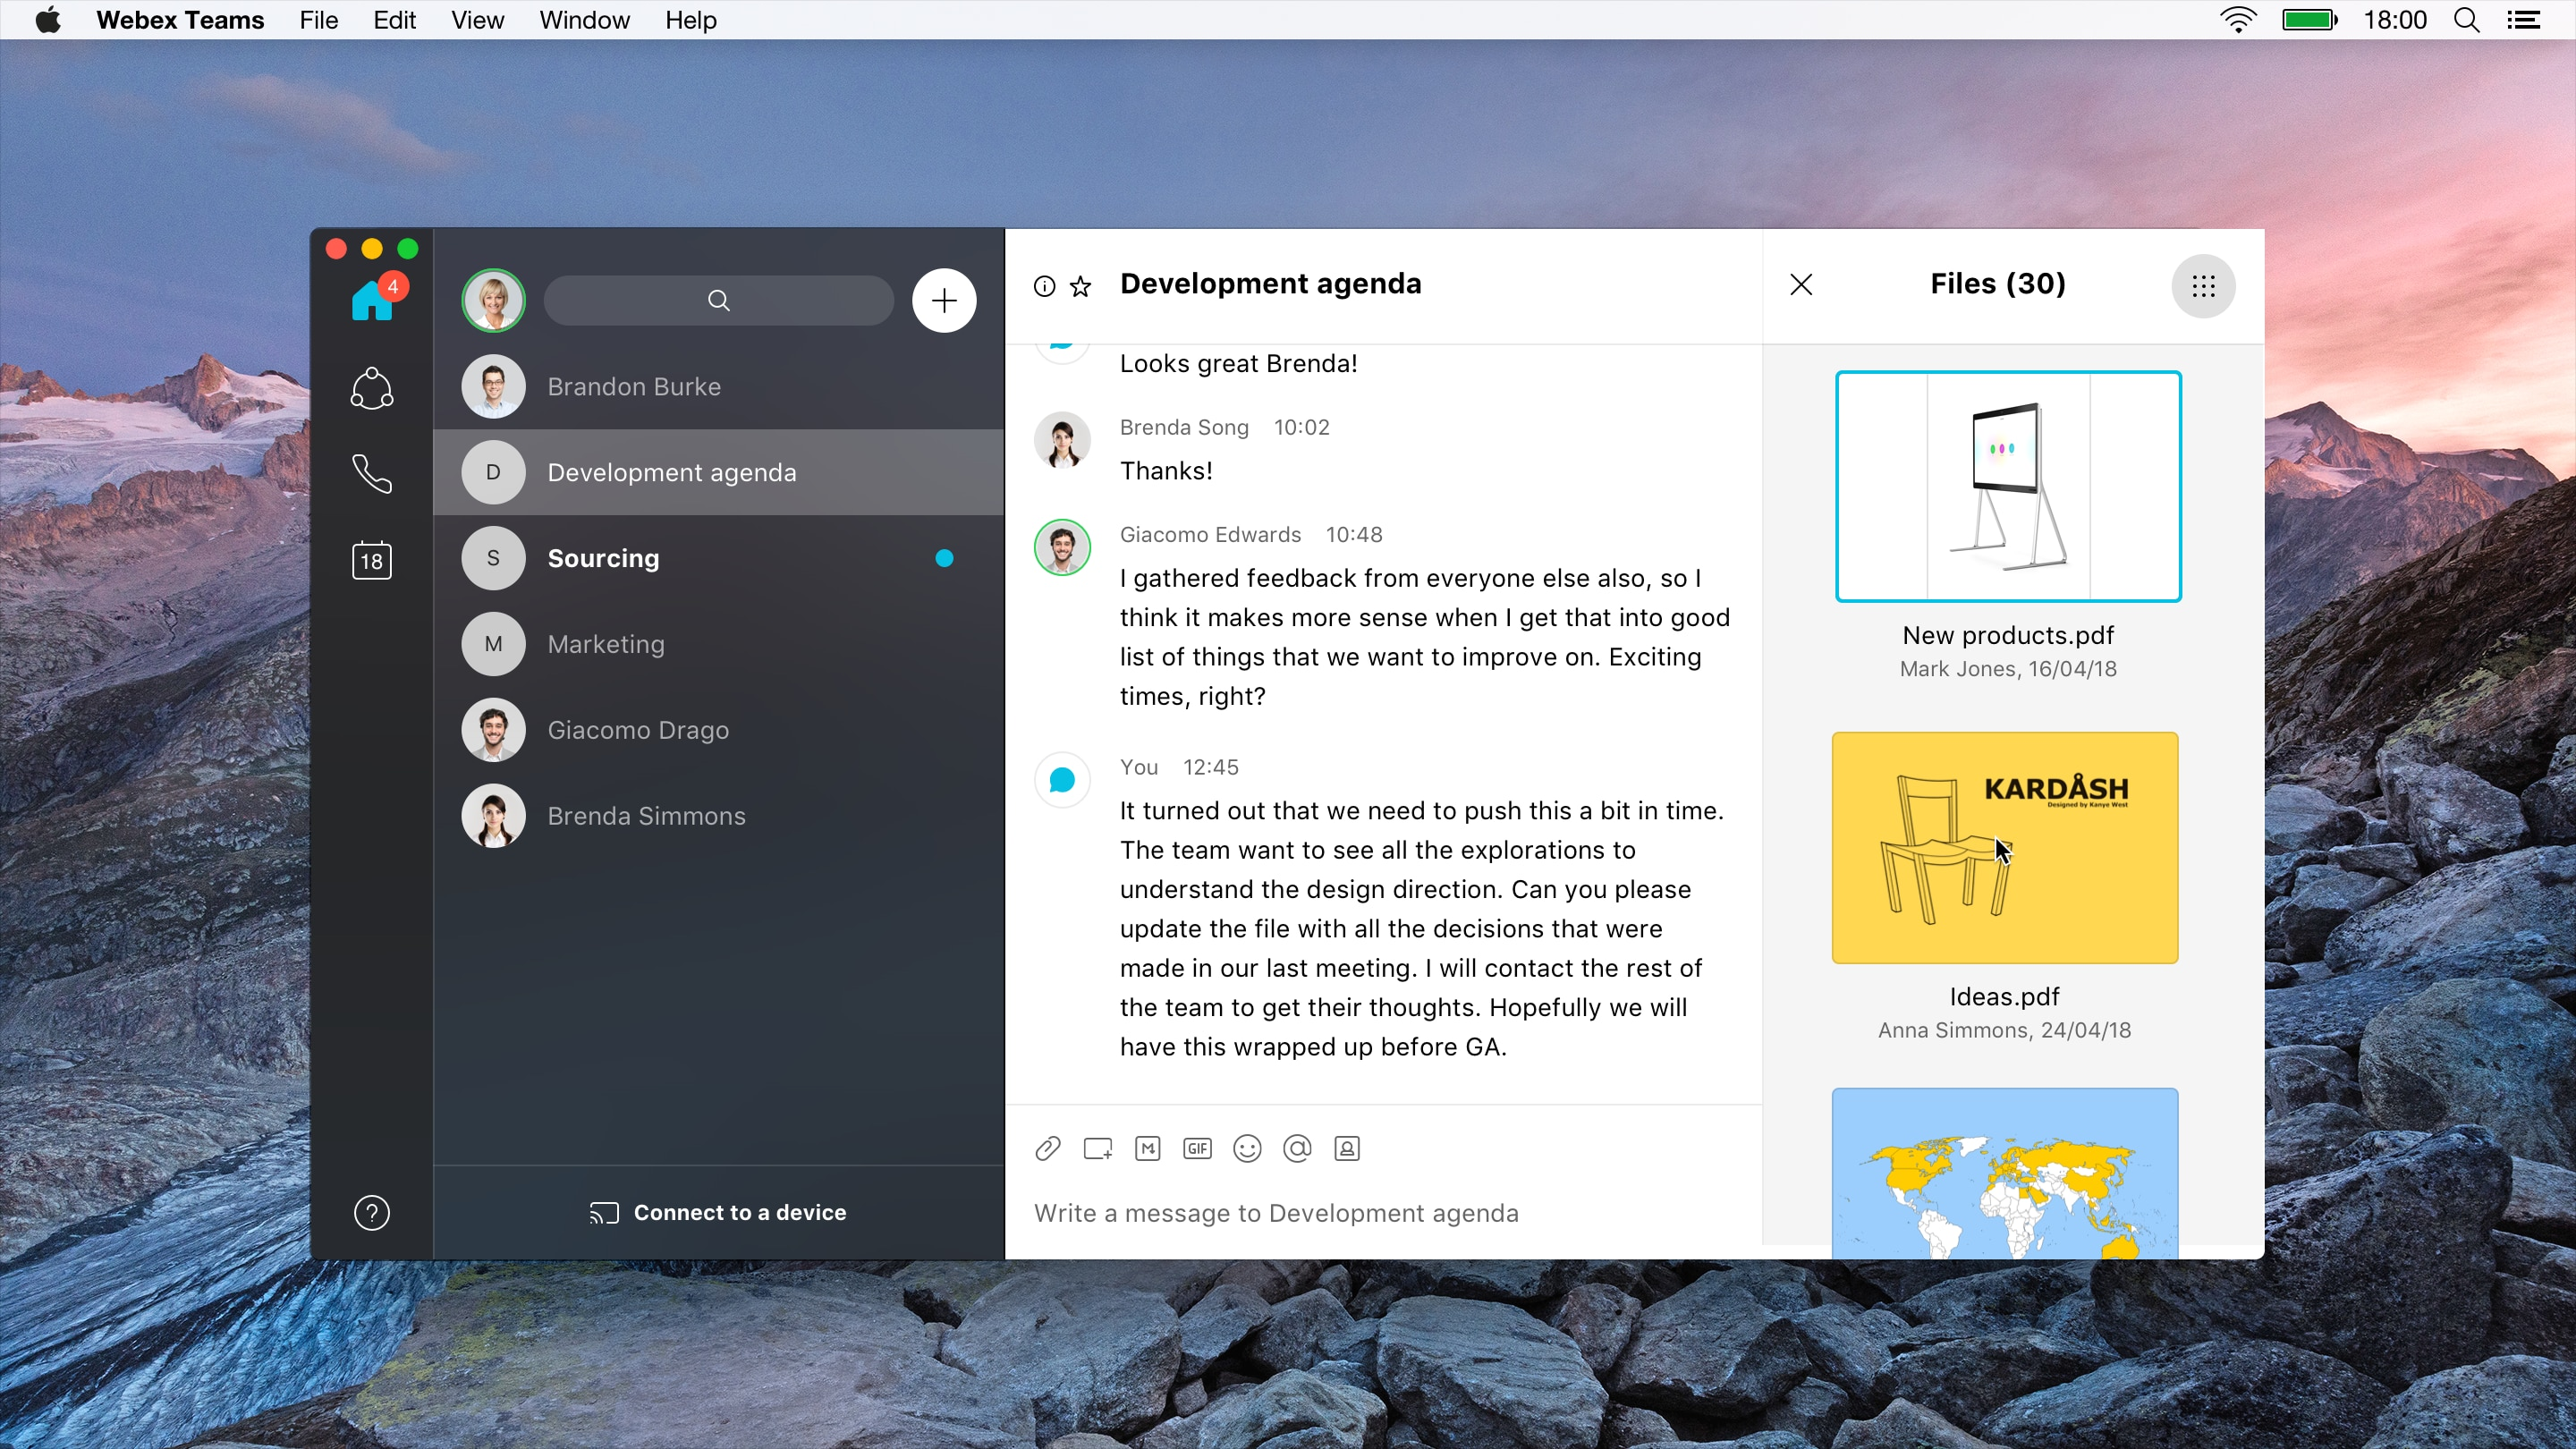 Team Collaboration App, File Sharing, Messaging| Cisco Webex